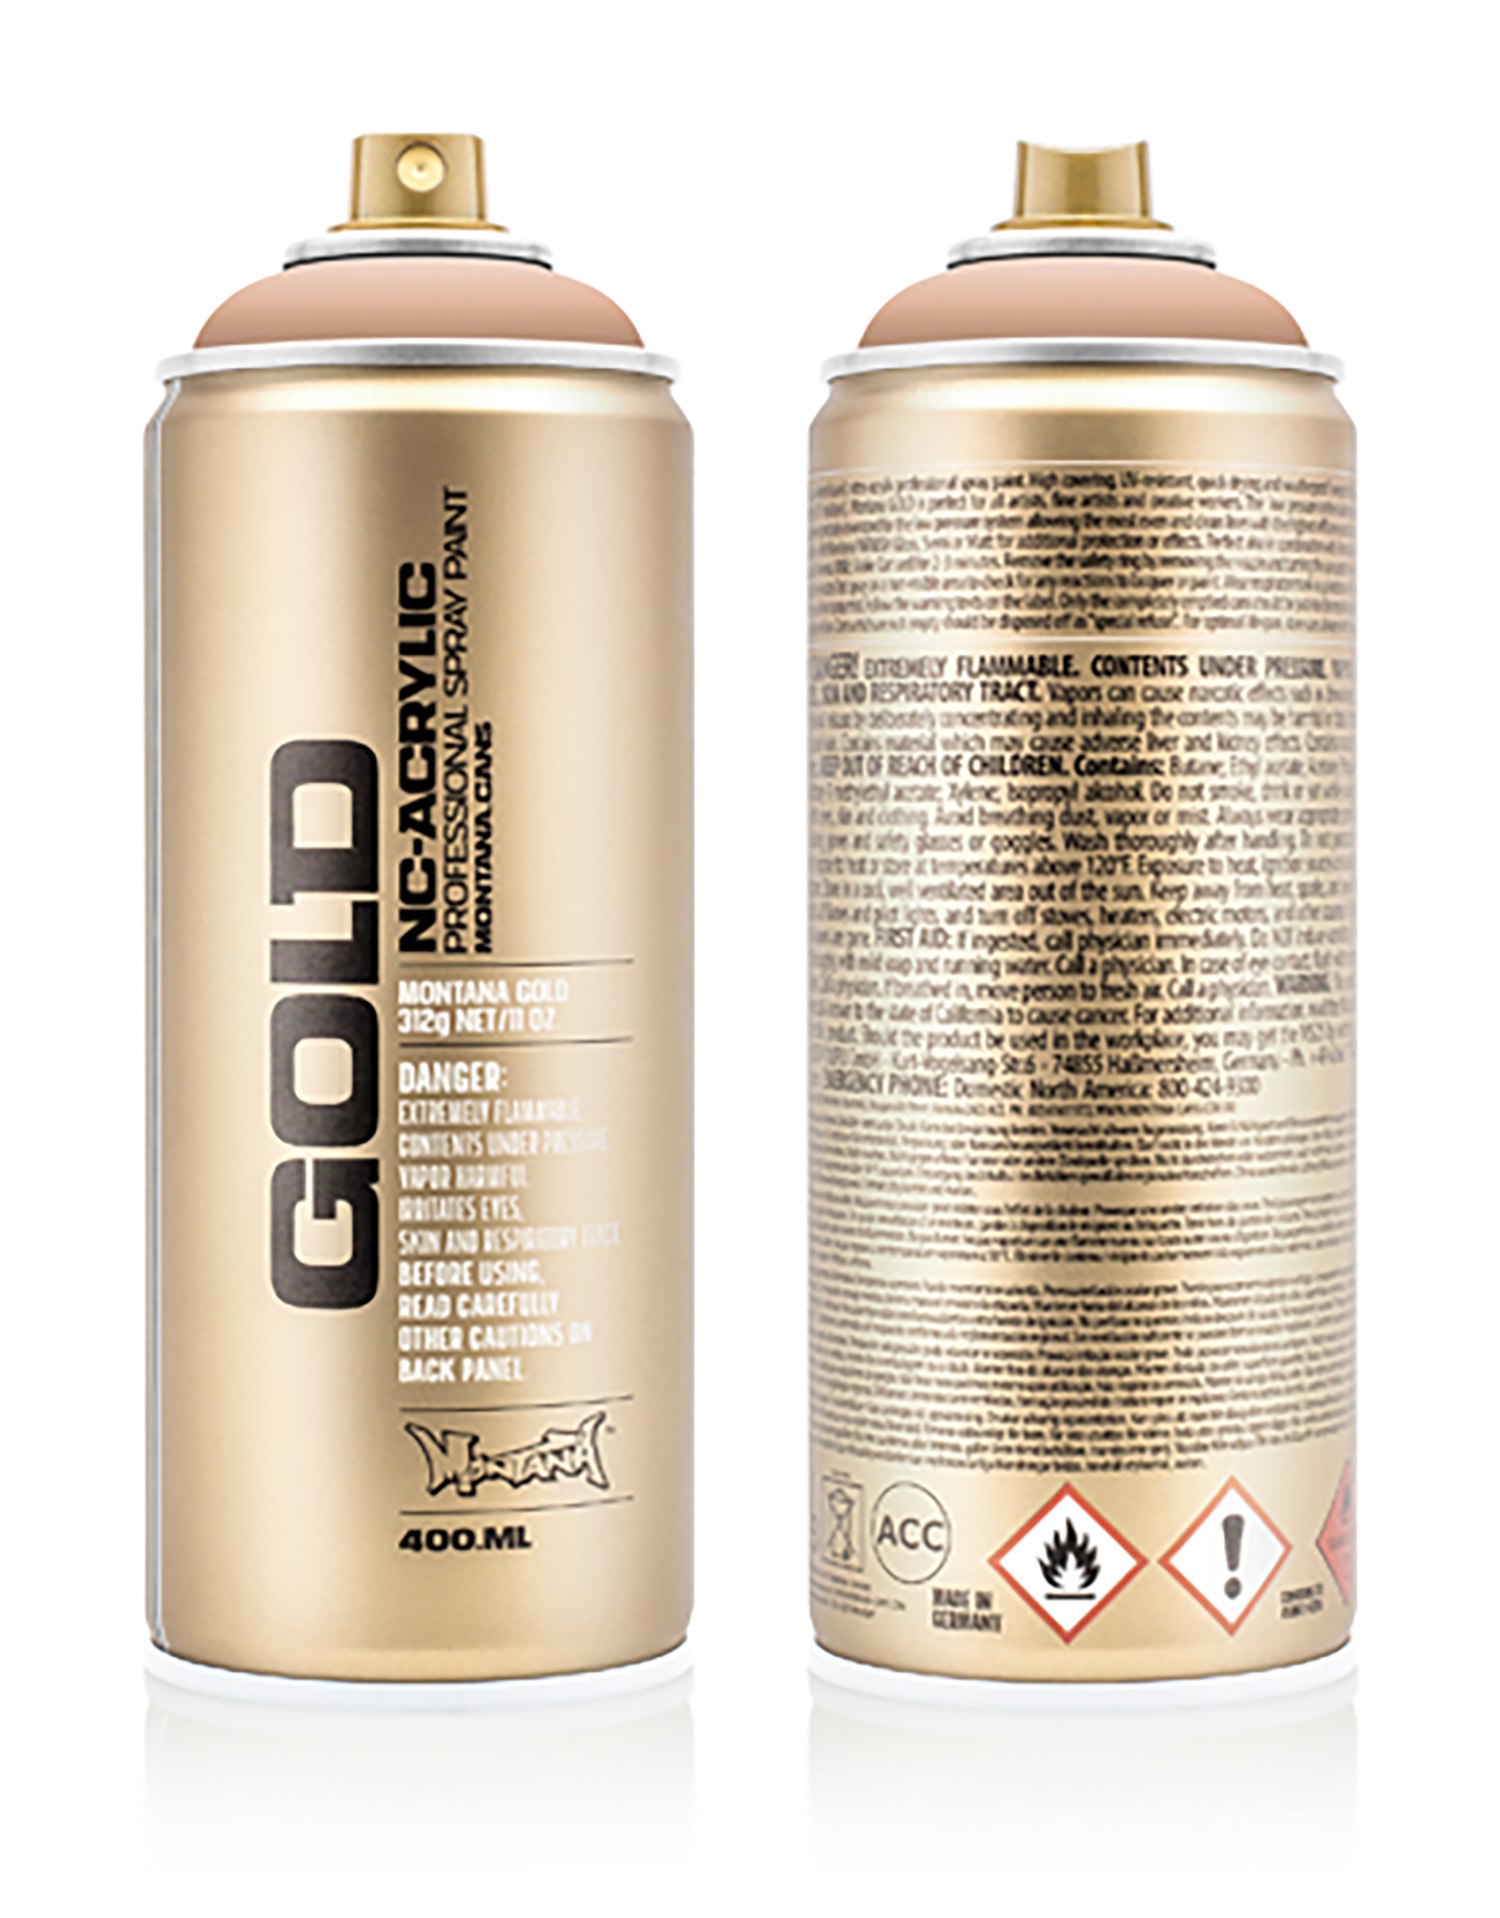 MONTANA-GOLD-SPRAY-400ML-G-1430